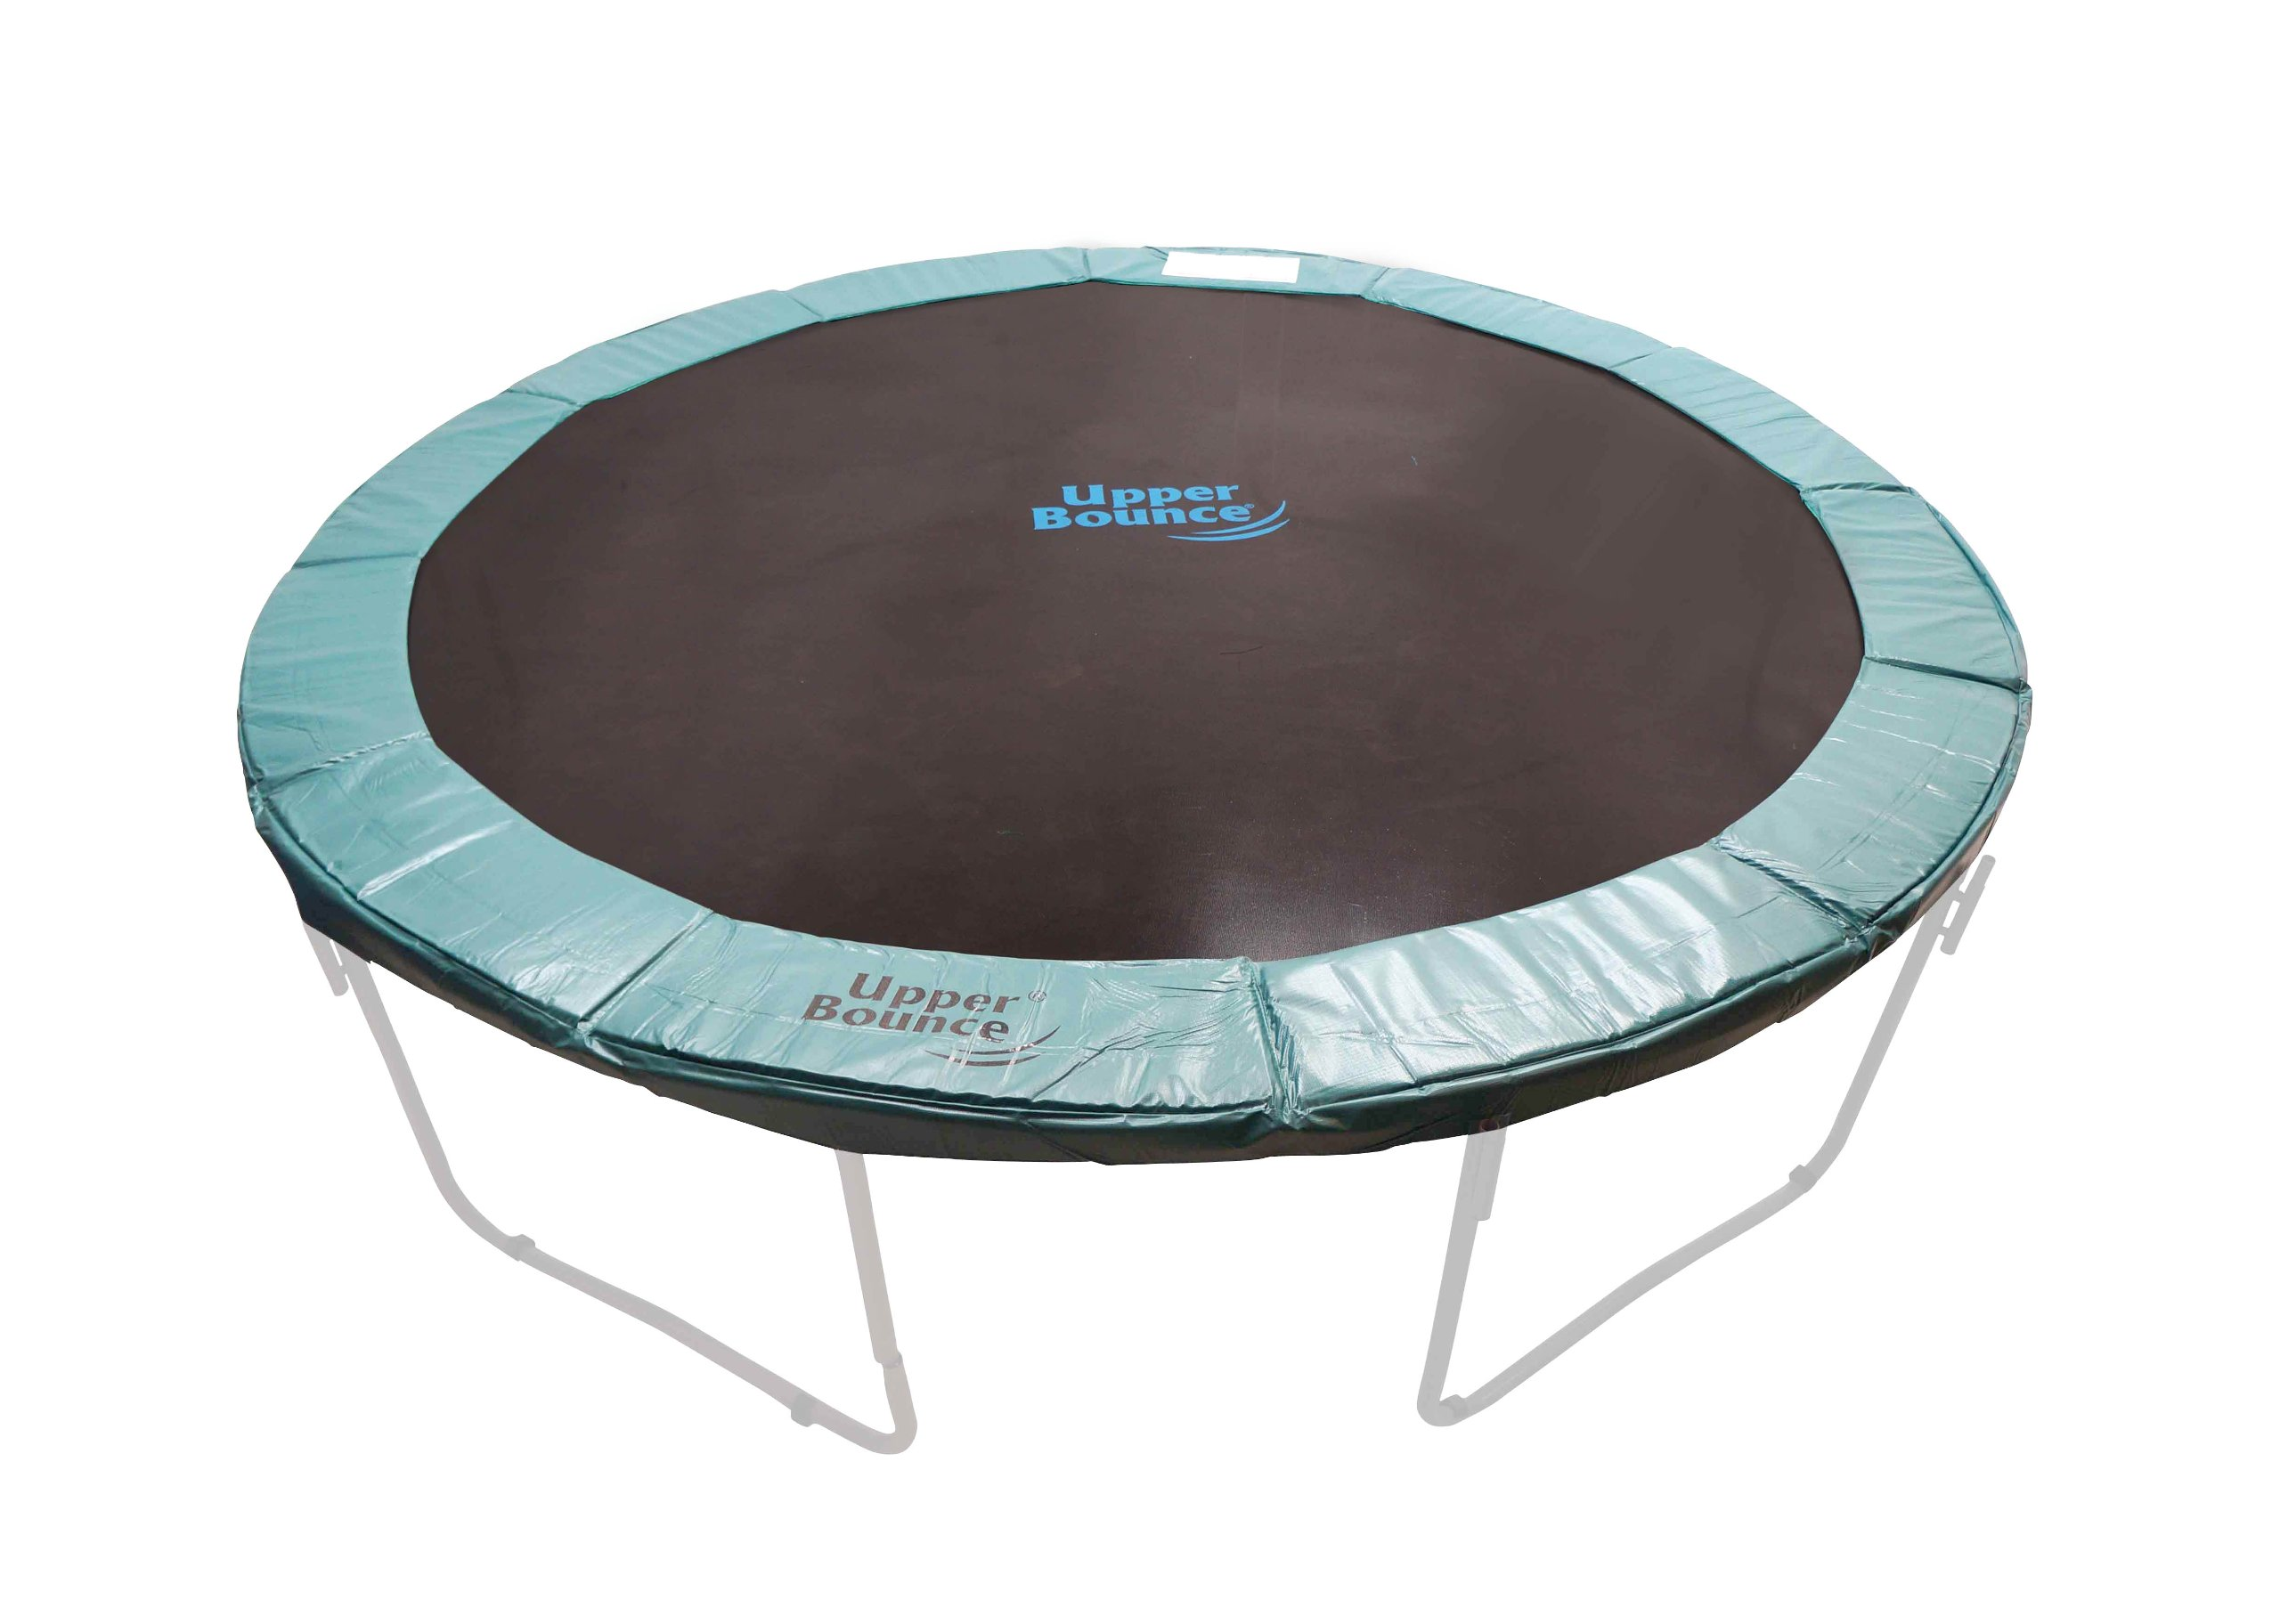 Upper Bounce Super Net & Pad Combo Fits for 14' Round Frames Using 4 Poles or 2 Arches by Upper Bounce (Image #1)